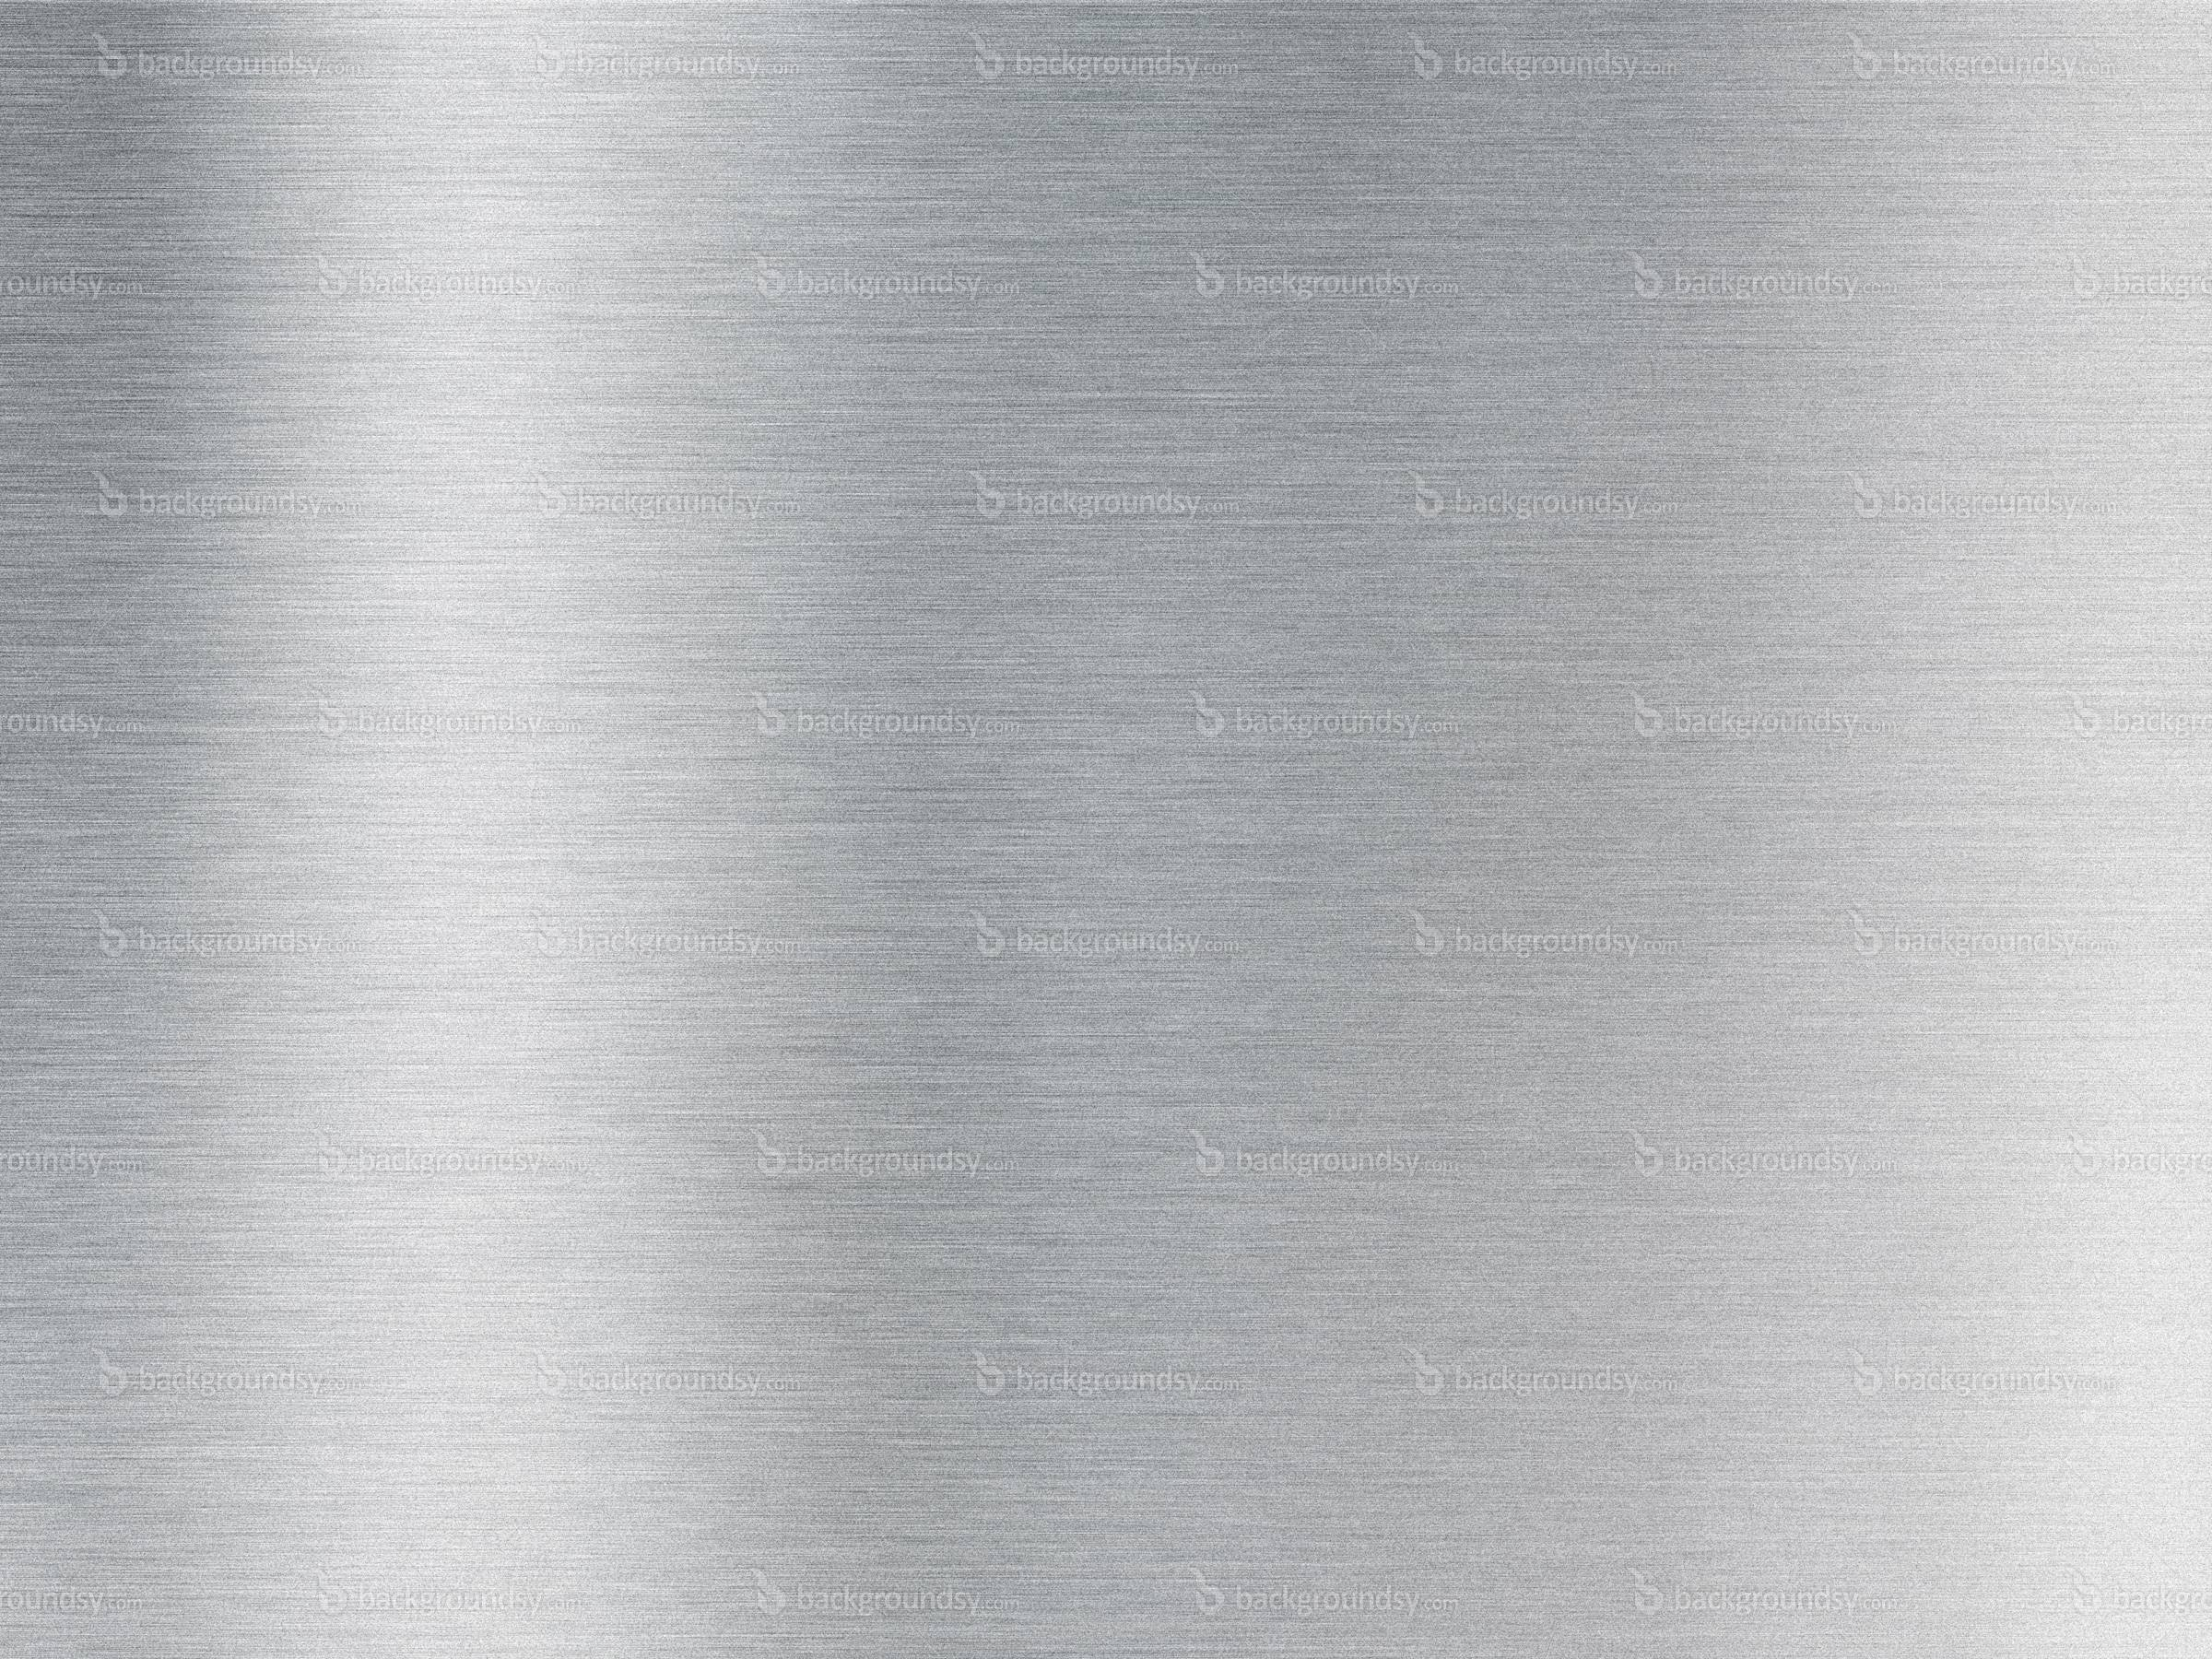 brushed stainless steel wallpaper - photo #19